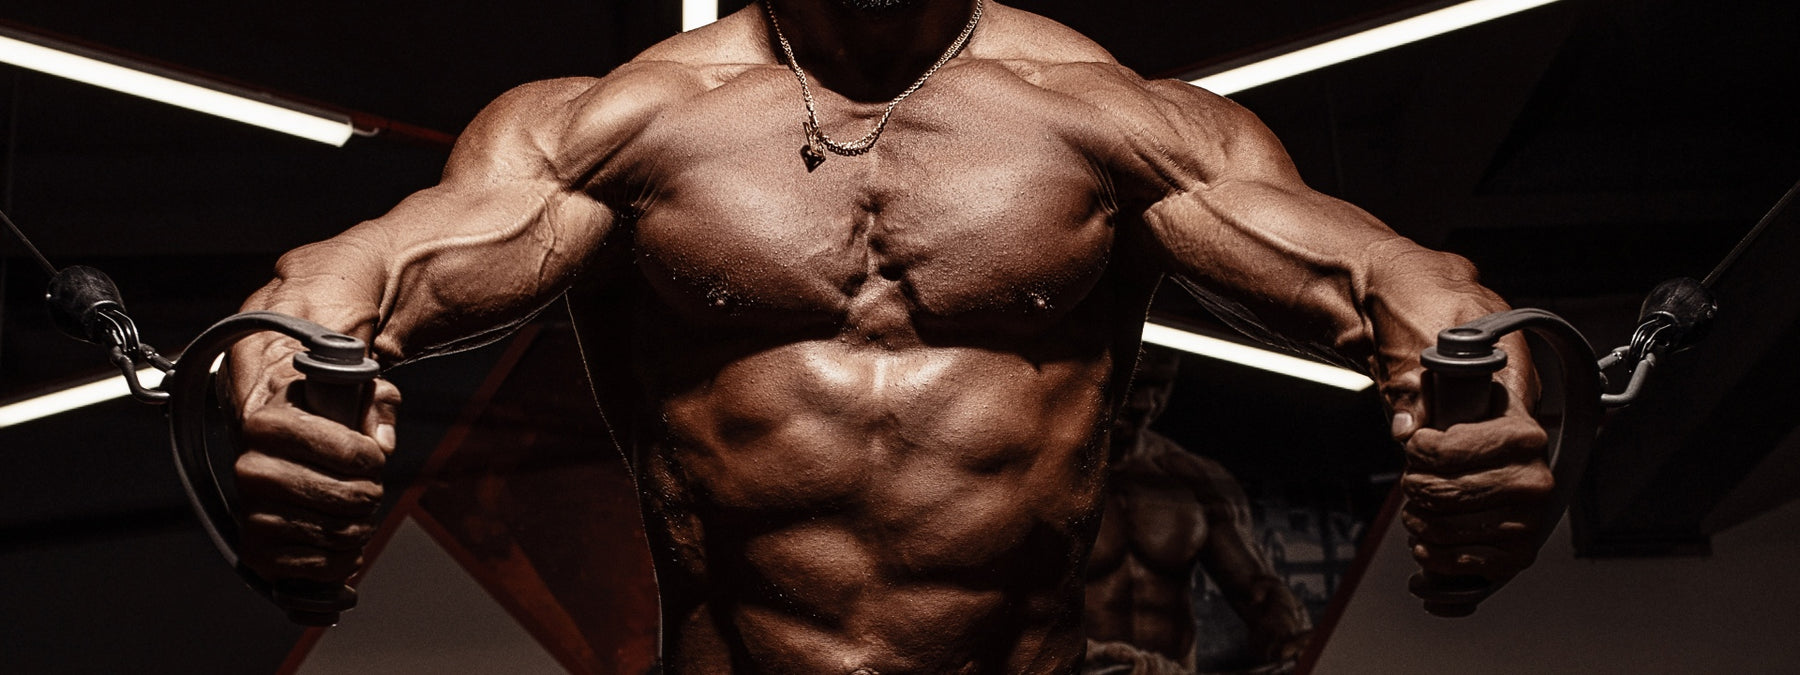 The Best Workout Routines - Our Top 10 Training Programs